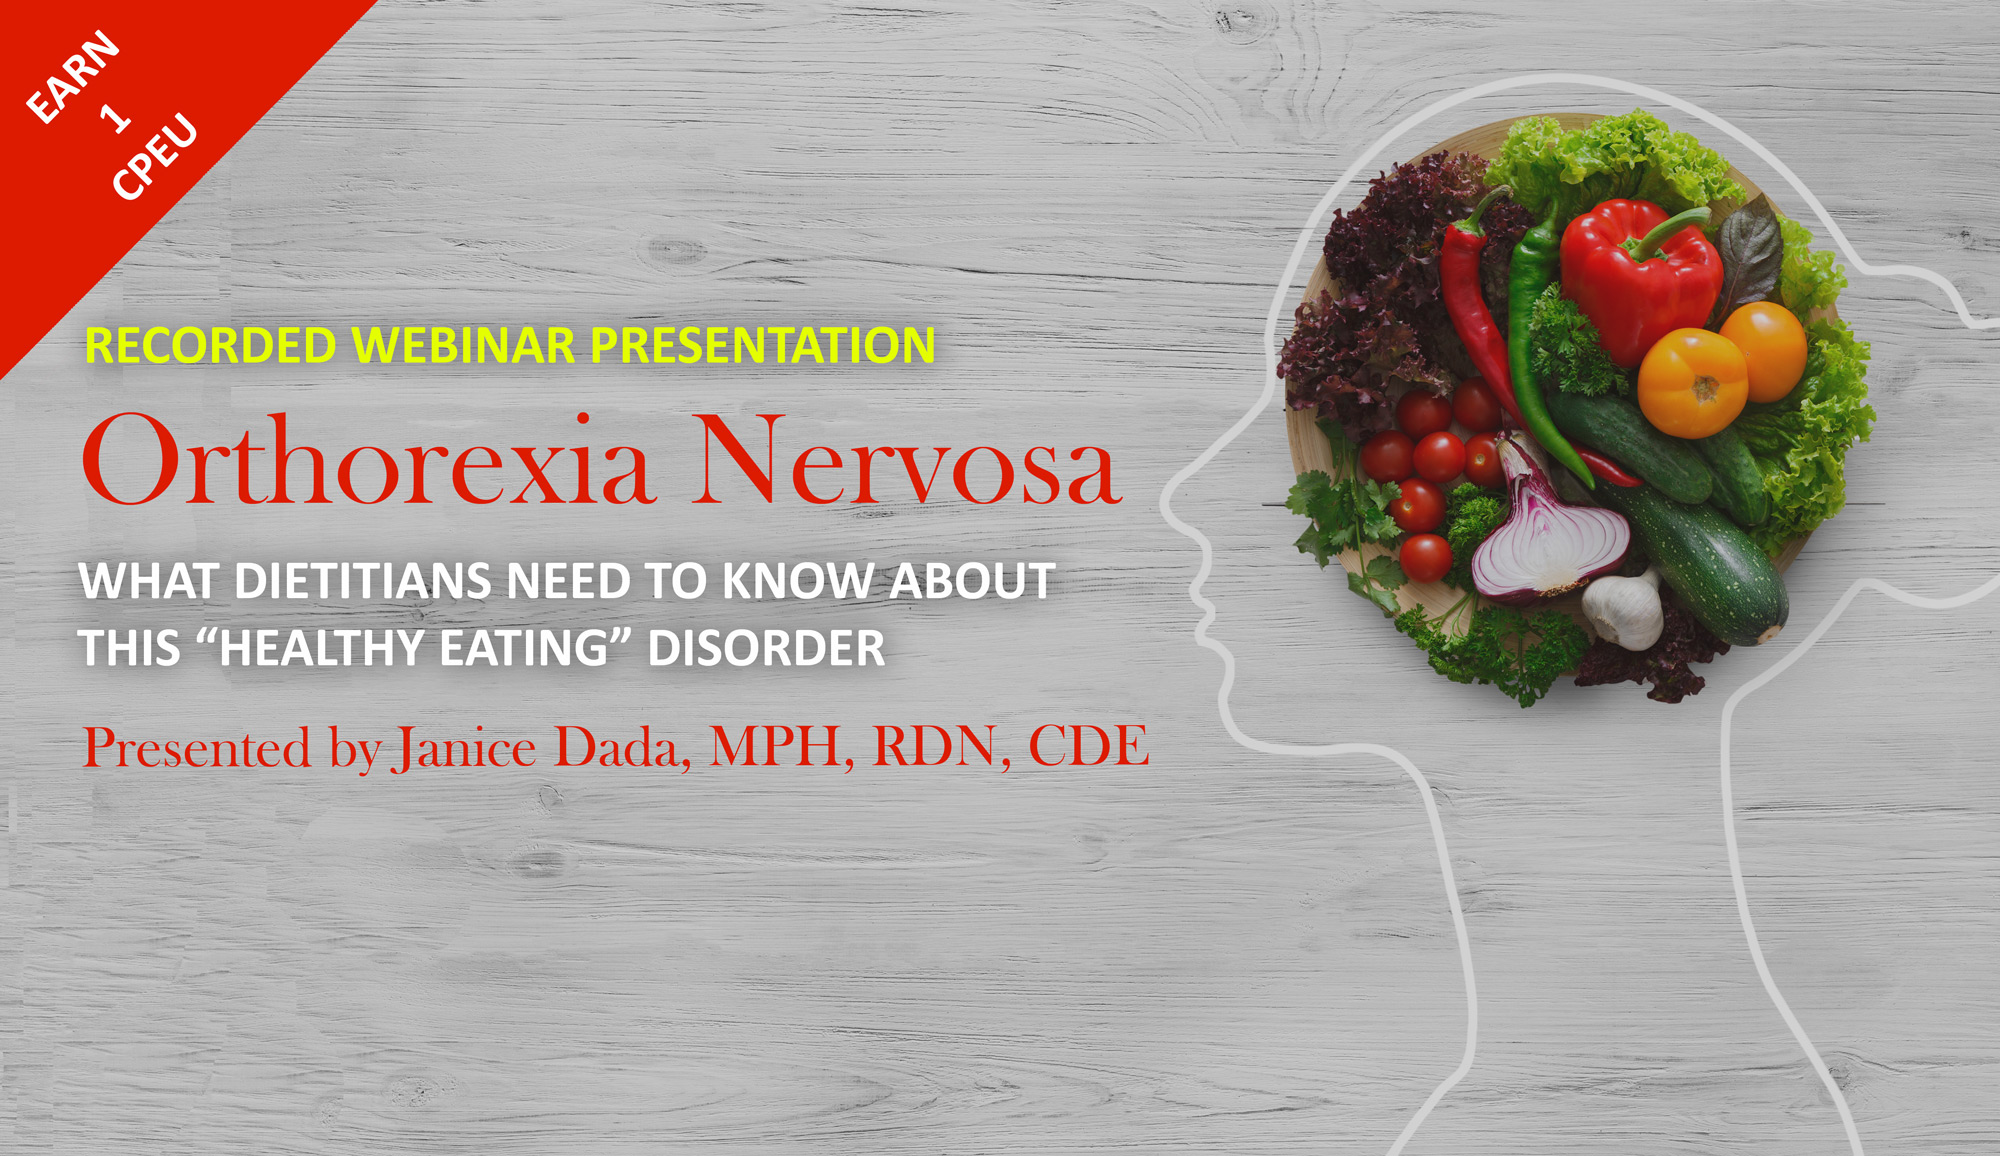 Recorded Webinar: Orthorexia Nervosa